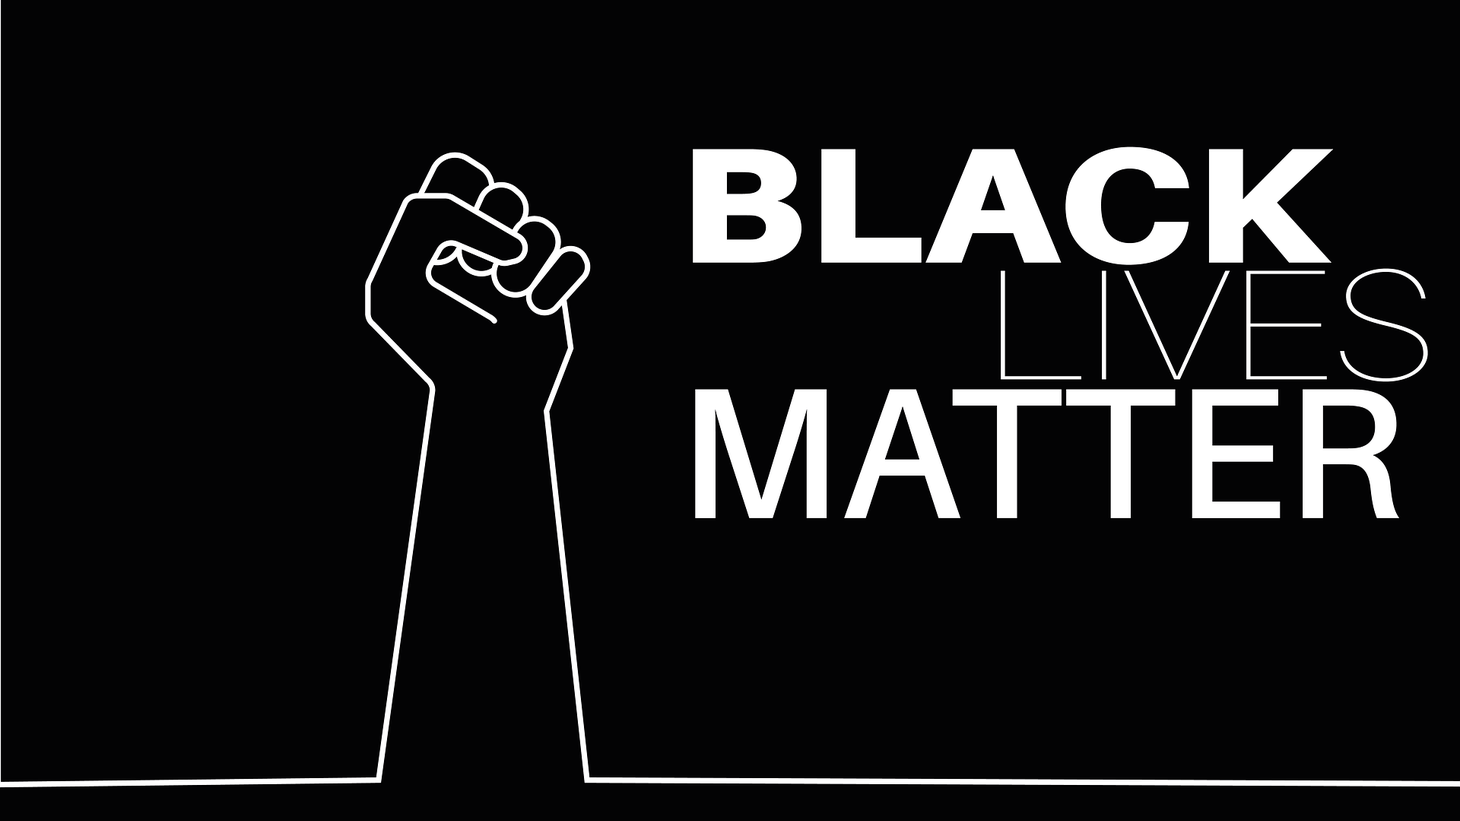 Many companies are issuing statements that they support Black Lives Matter. Will they substantially change the inequalities within their own staff and hiring practices?